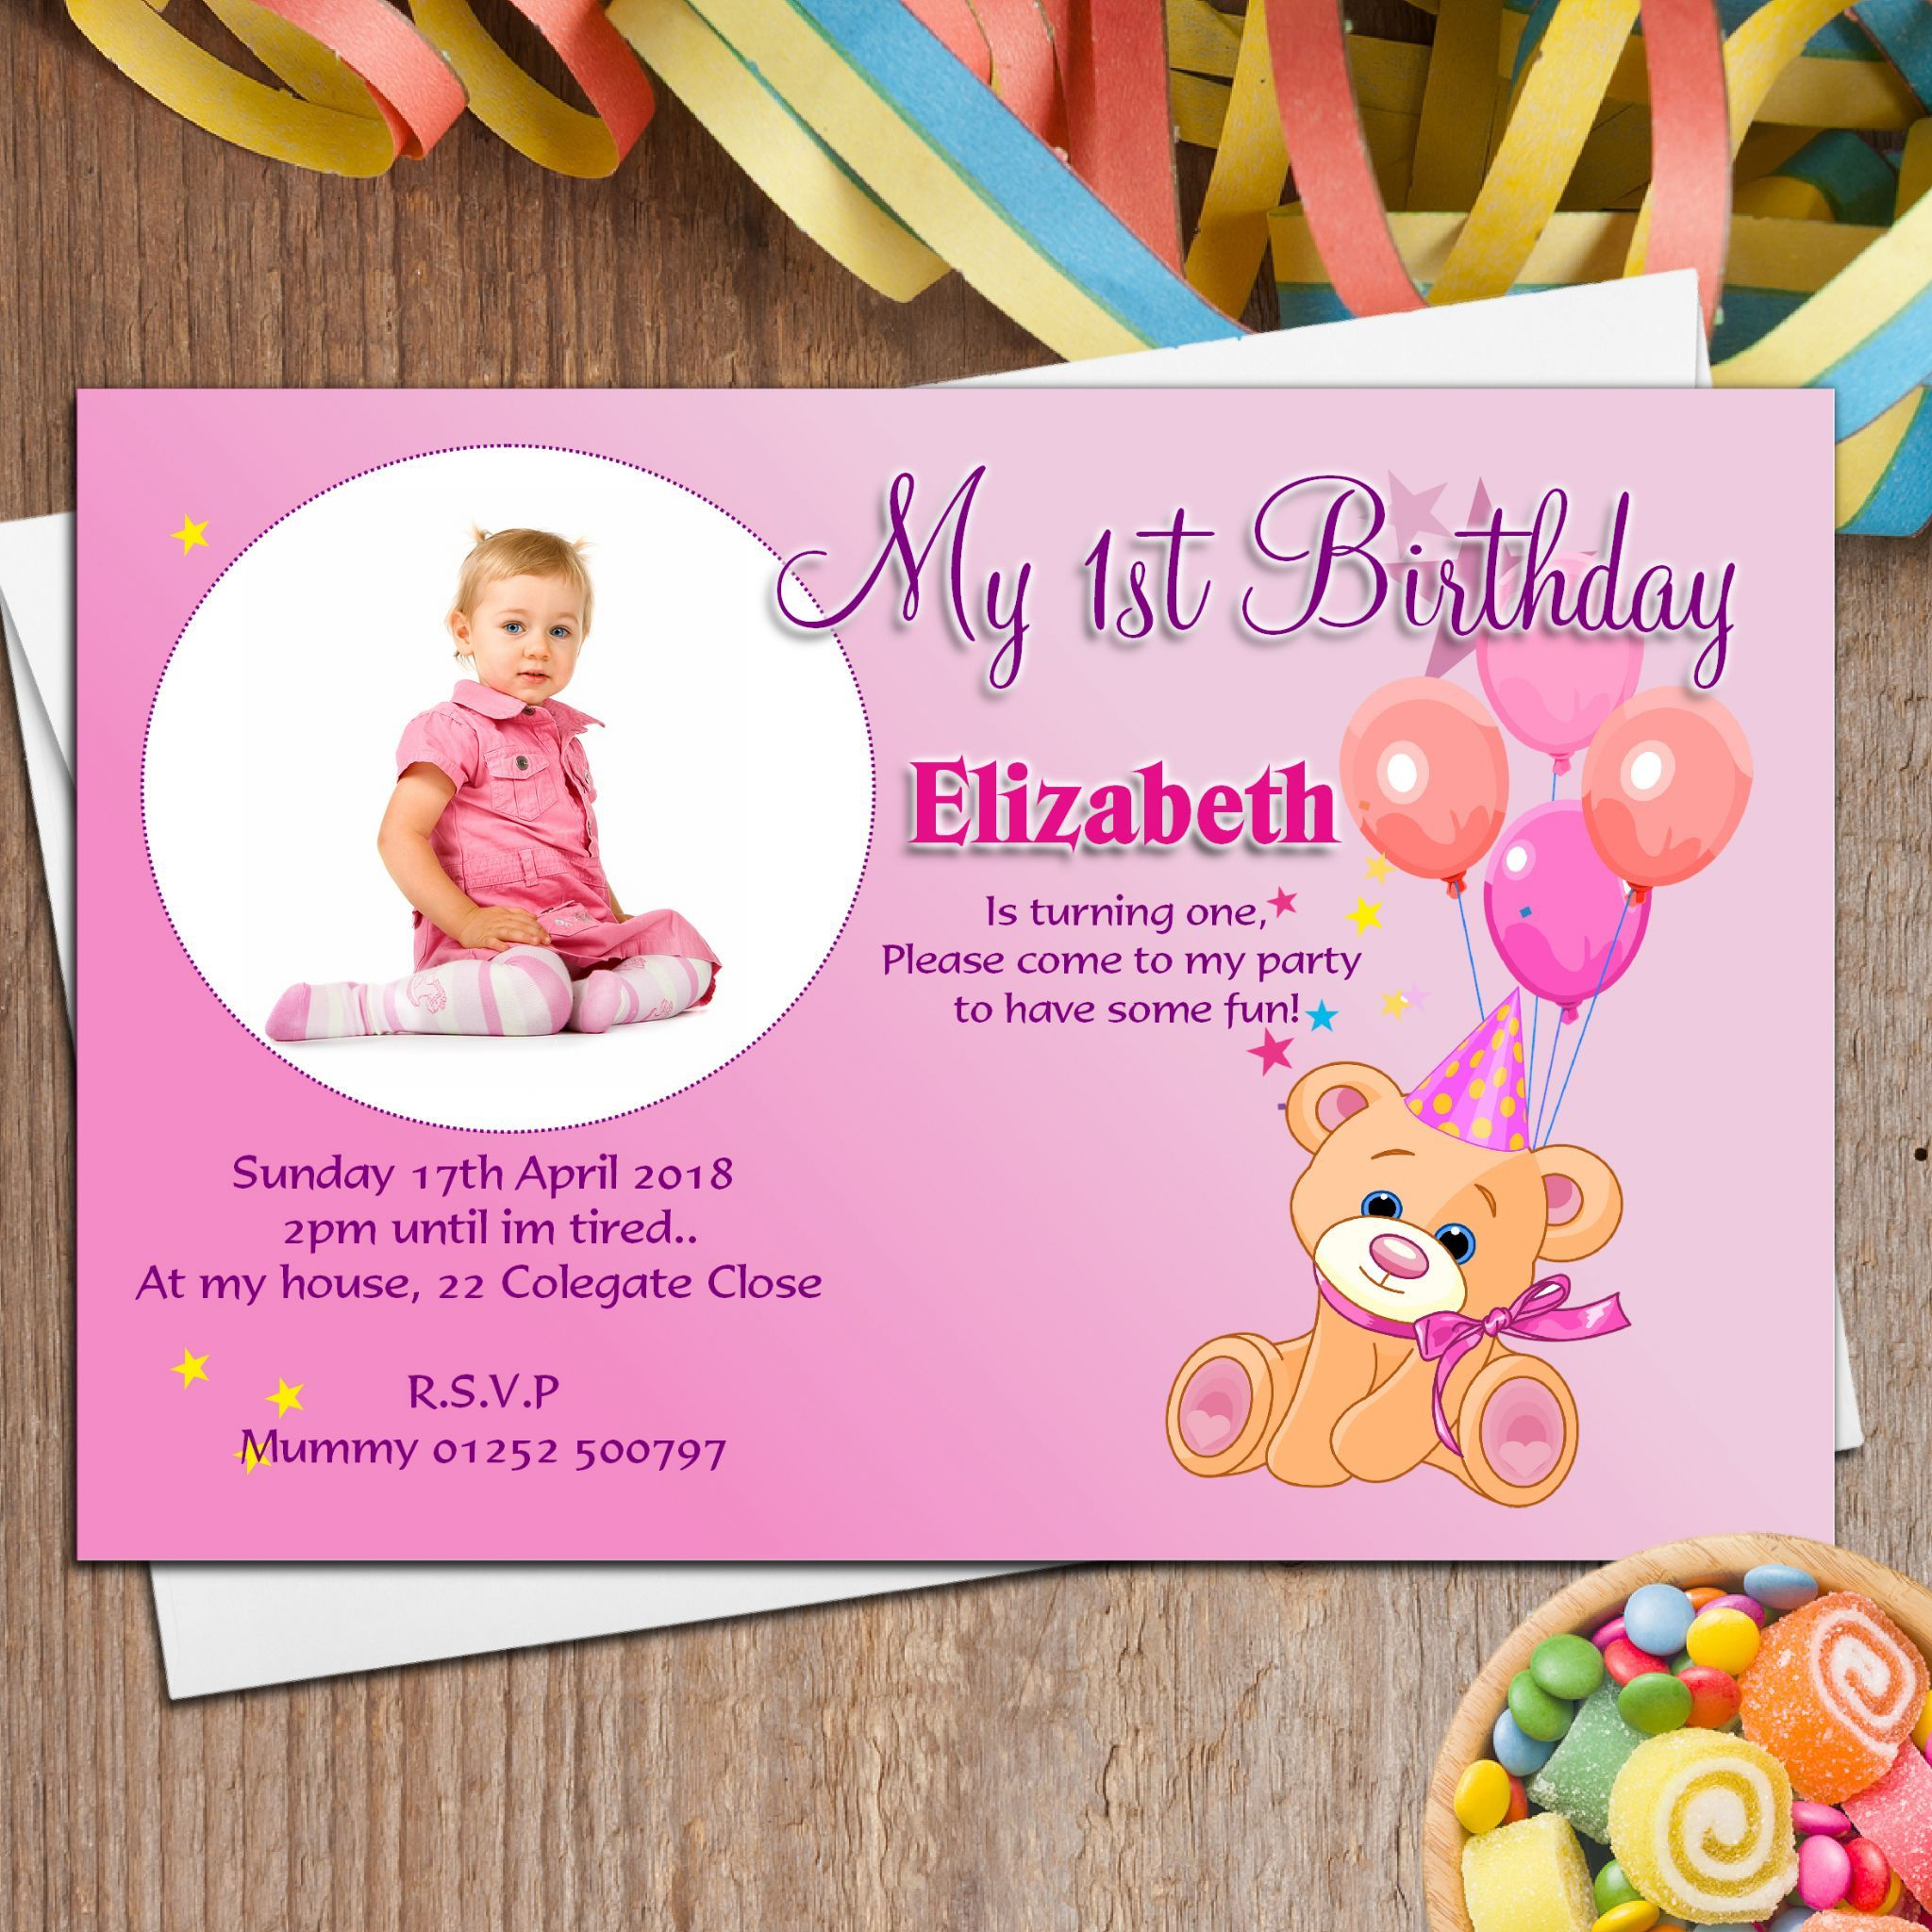 1st birthday invitation cards for baby boy in india dnyaneshwar 1st birthday invitation cards for baby boy in india stopboris Image collections